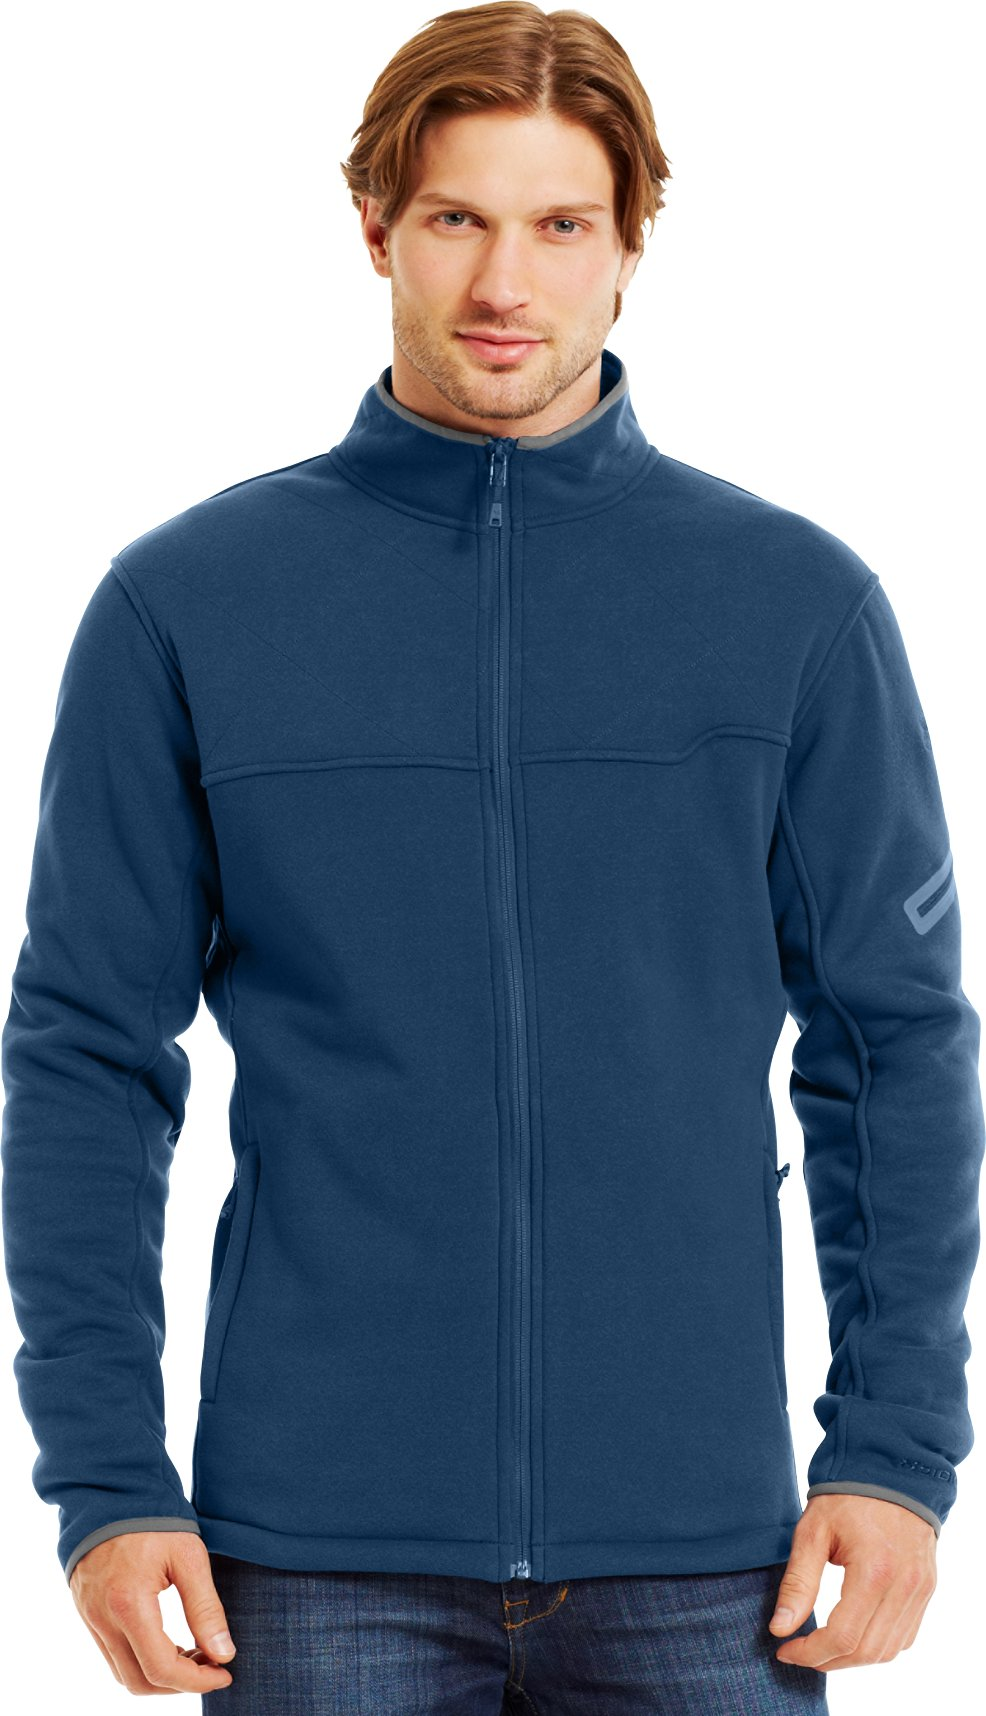 Men's Extreme ColdGear® Jacket, PETROL BLUE, Front